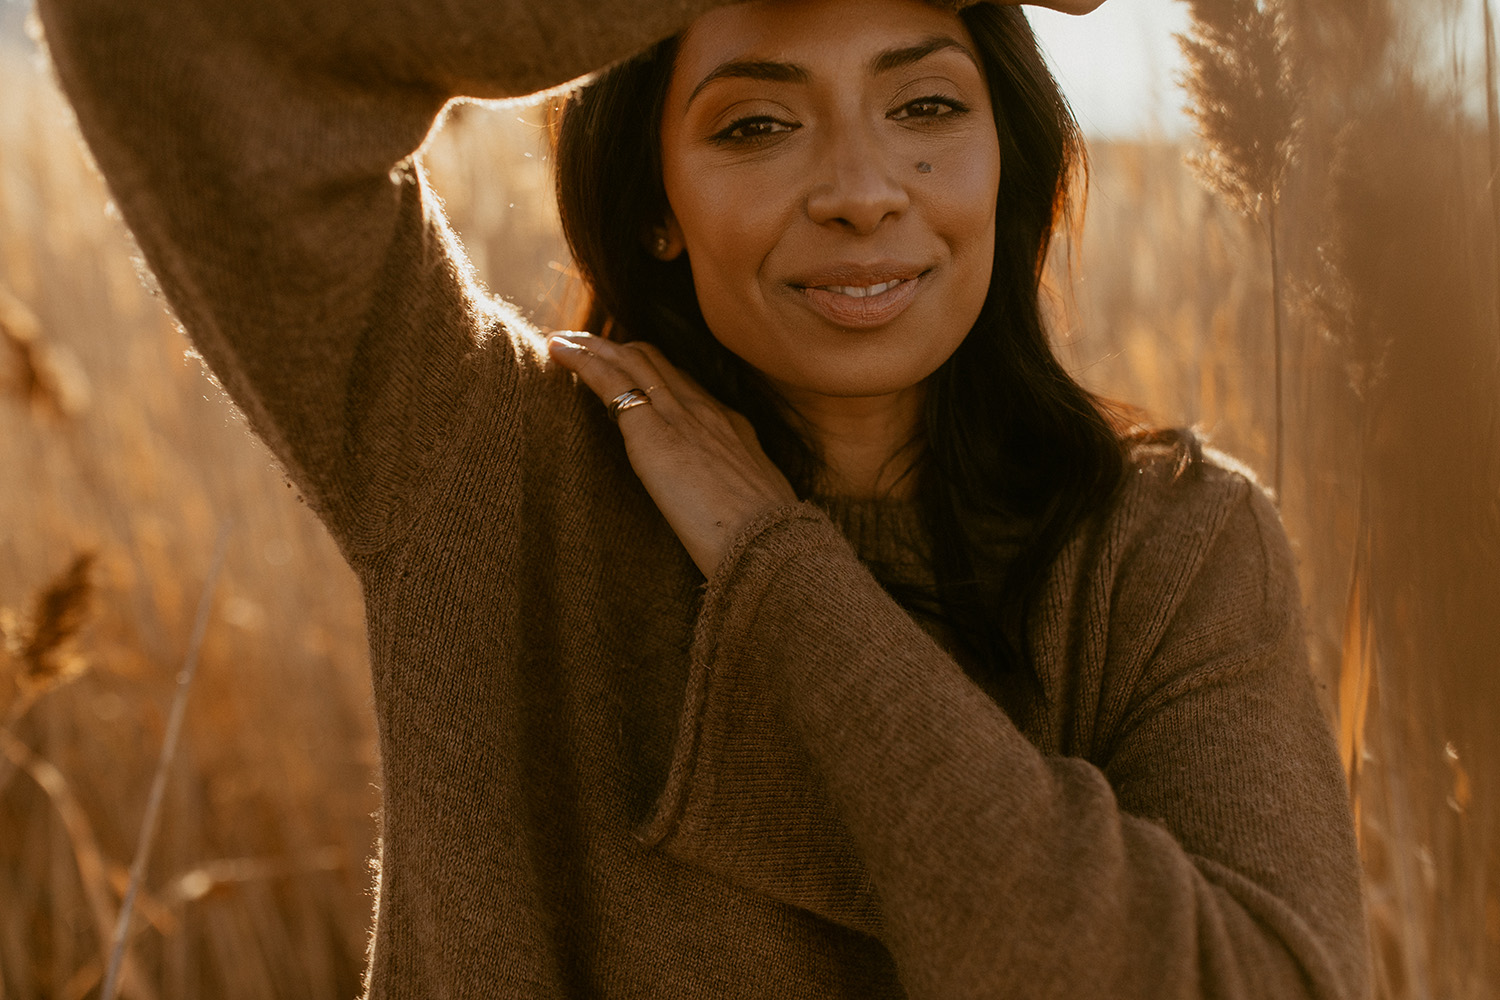 An unedited portrait photo of a woman who stands in a cornfield while the sun shines.